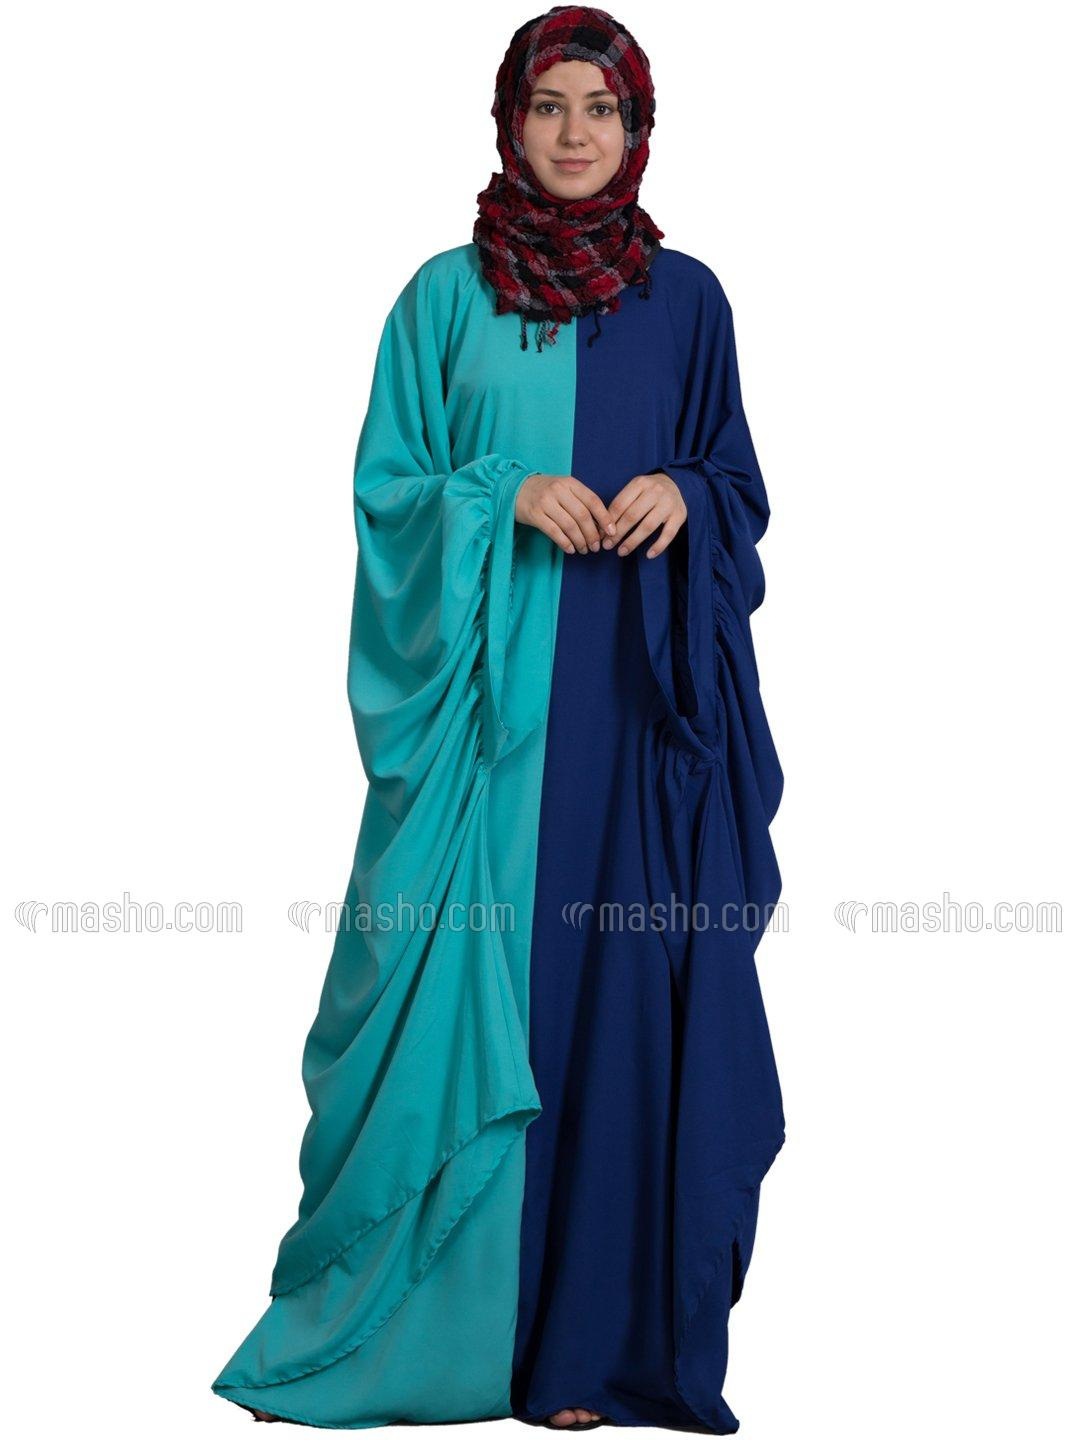 Polyster Crepe Contrast One Piece Casual Abaya in Royal Blue and Aqua